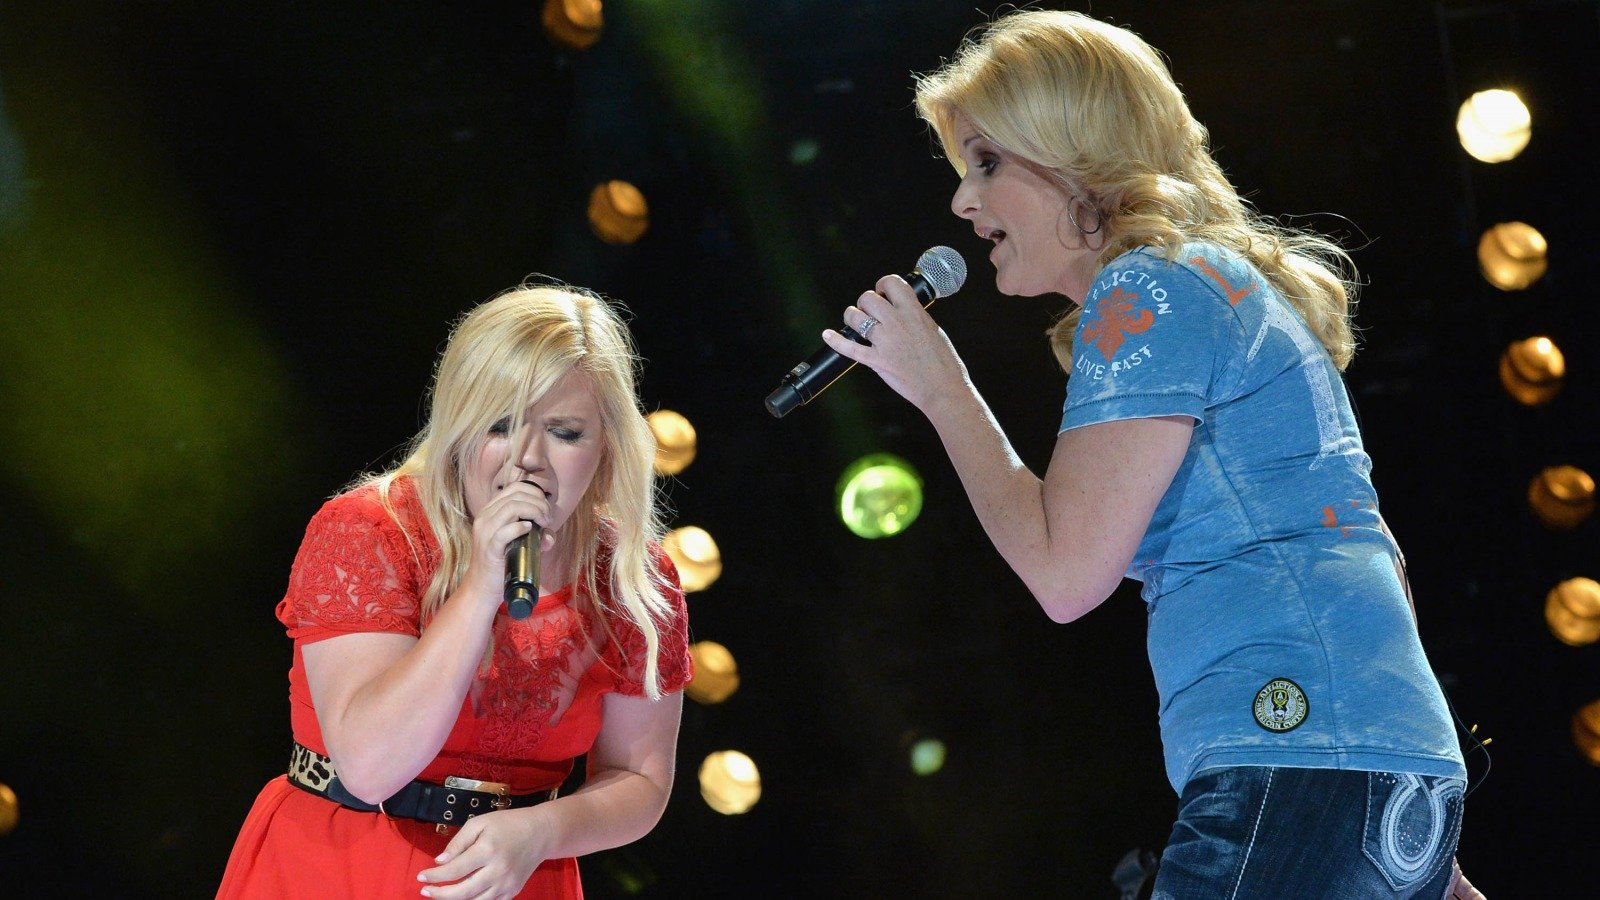 Details About Trisha Yearwood And Kelly Clarkson's Friendship